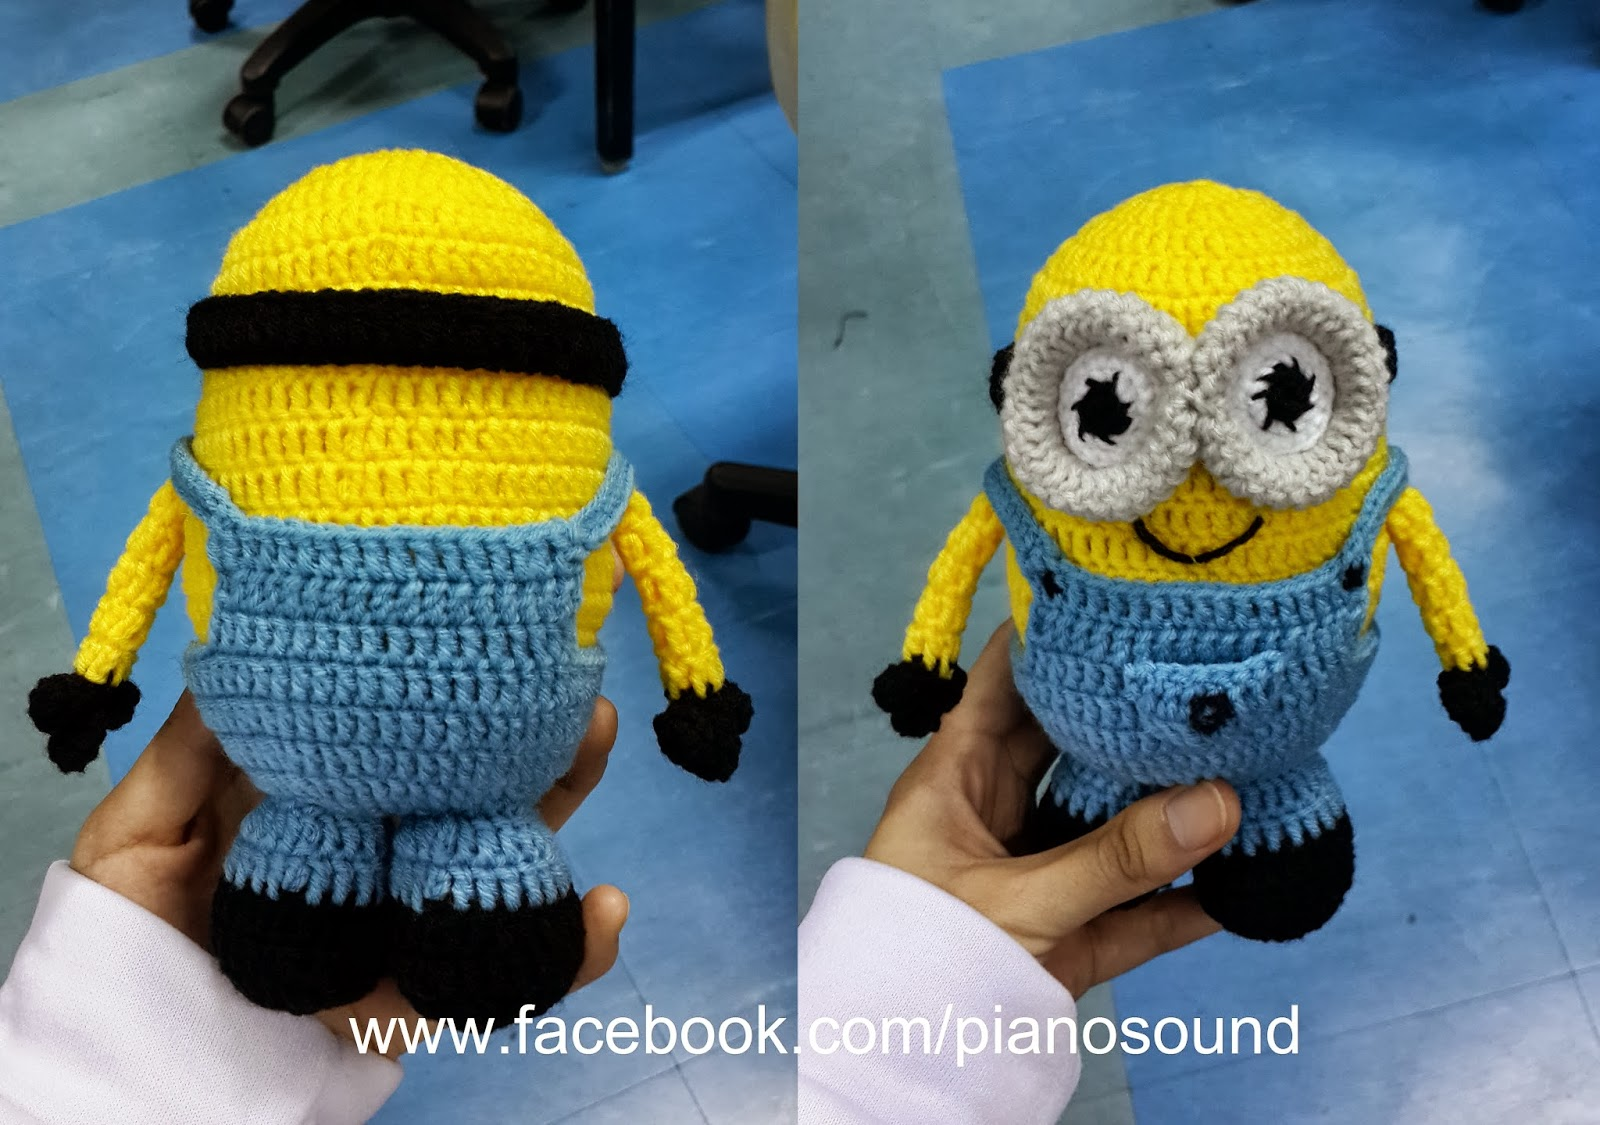 Amigurumipianosound crochet blog crochet minion free pattern do other people understand this pattern but finally there someone crochet the minion from my pattern and she send me back the picture bankloansurffo Images